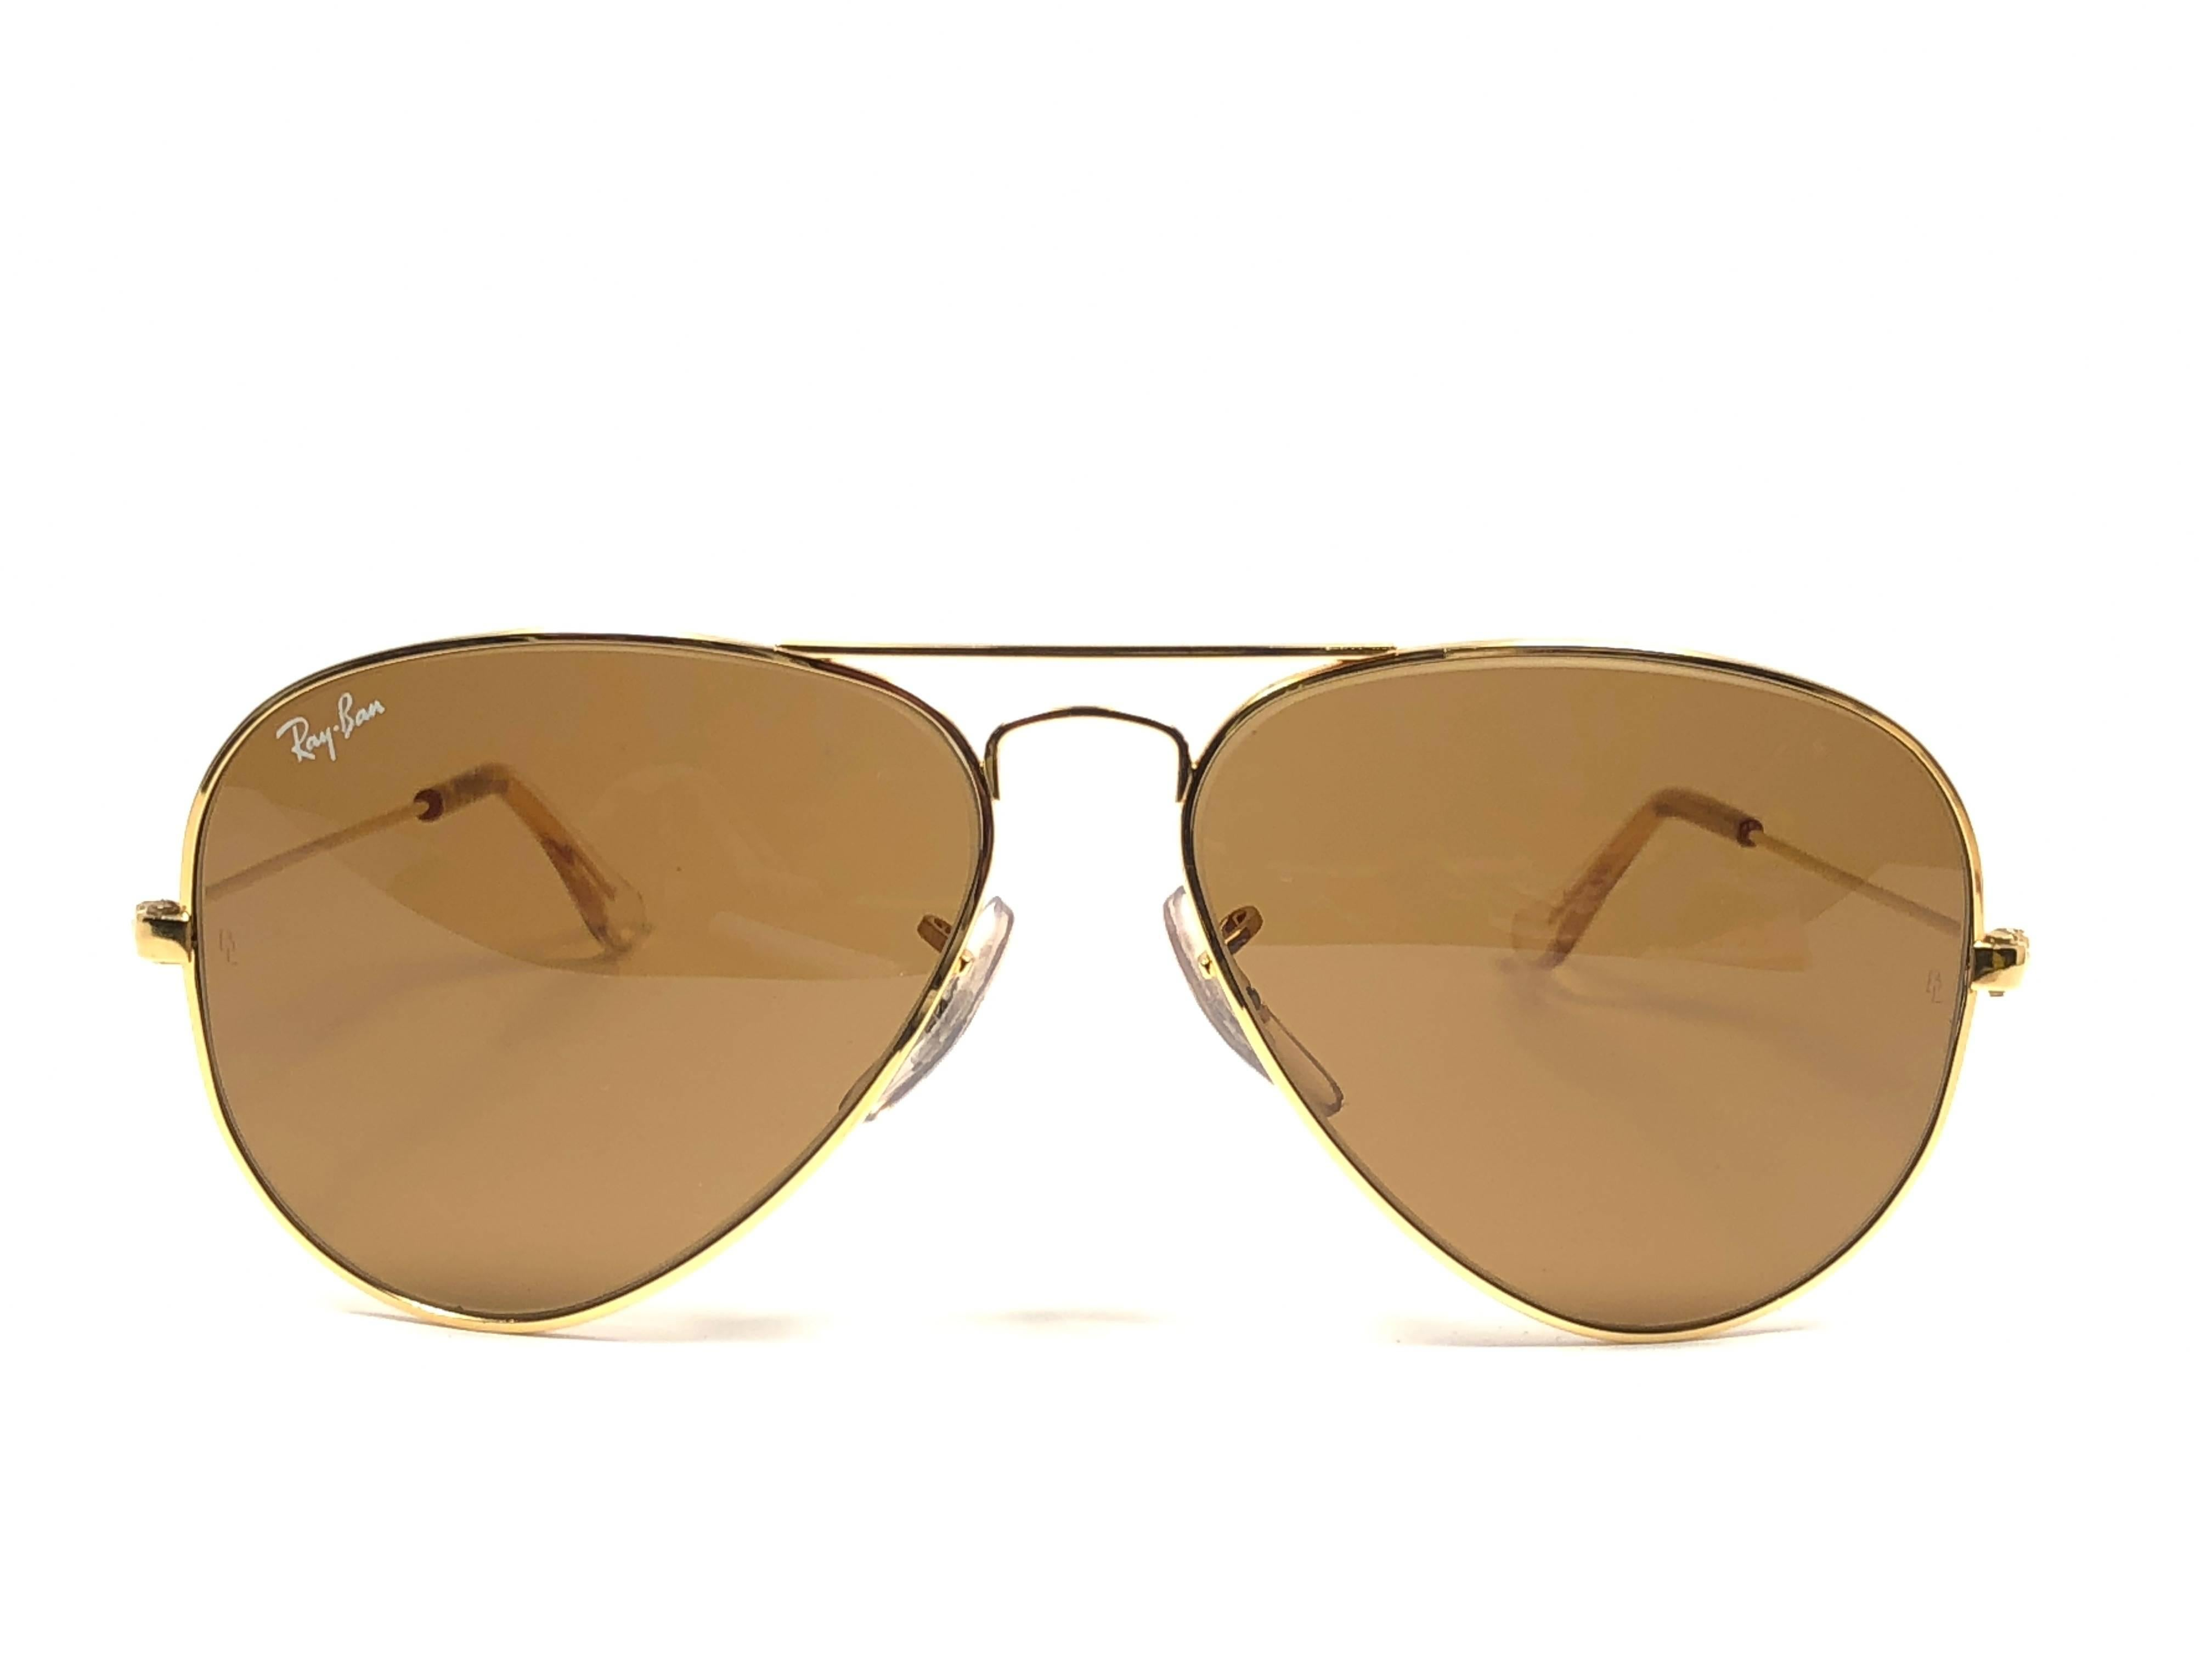 4199c1ba9c coupon code for new super special vintage ray ban aviator gold frame with  bl b15 brown